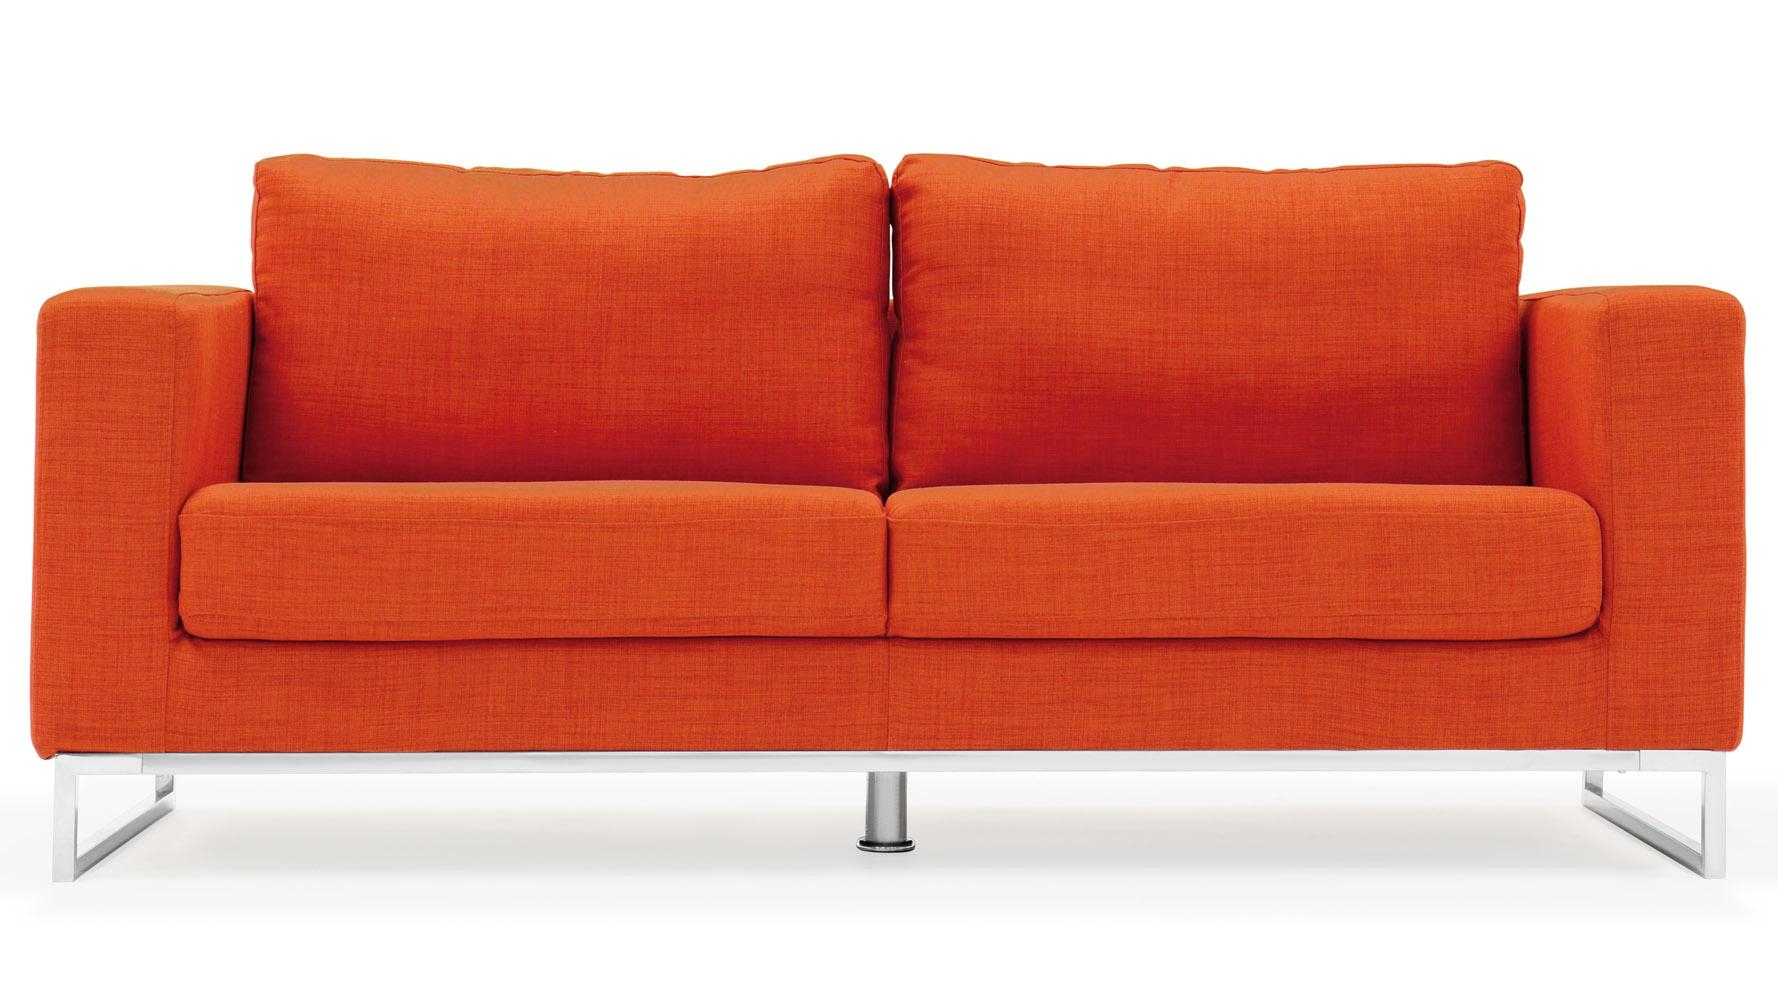 Modern Orange Fabric Upholstered 2 Piece Sofa Set With Stainless Within Orange Modern Sofas (Image 12 of 20)